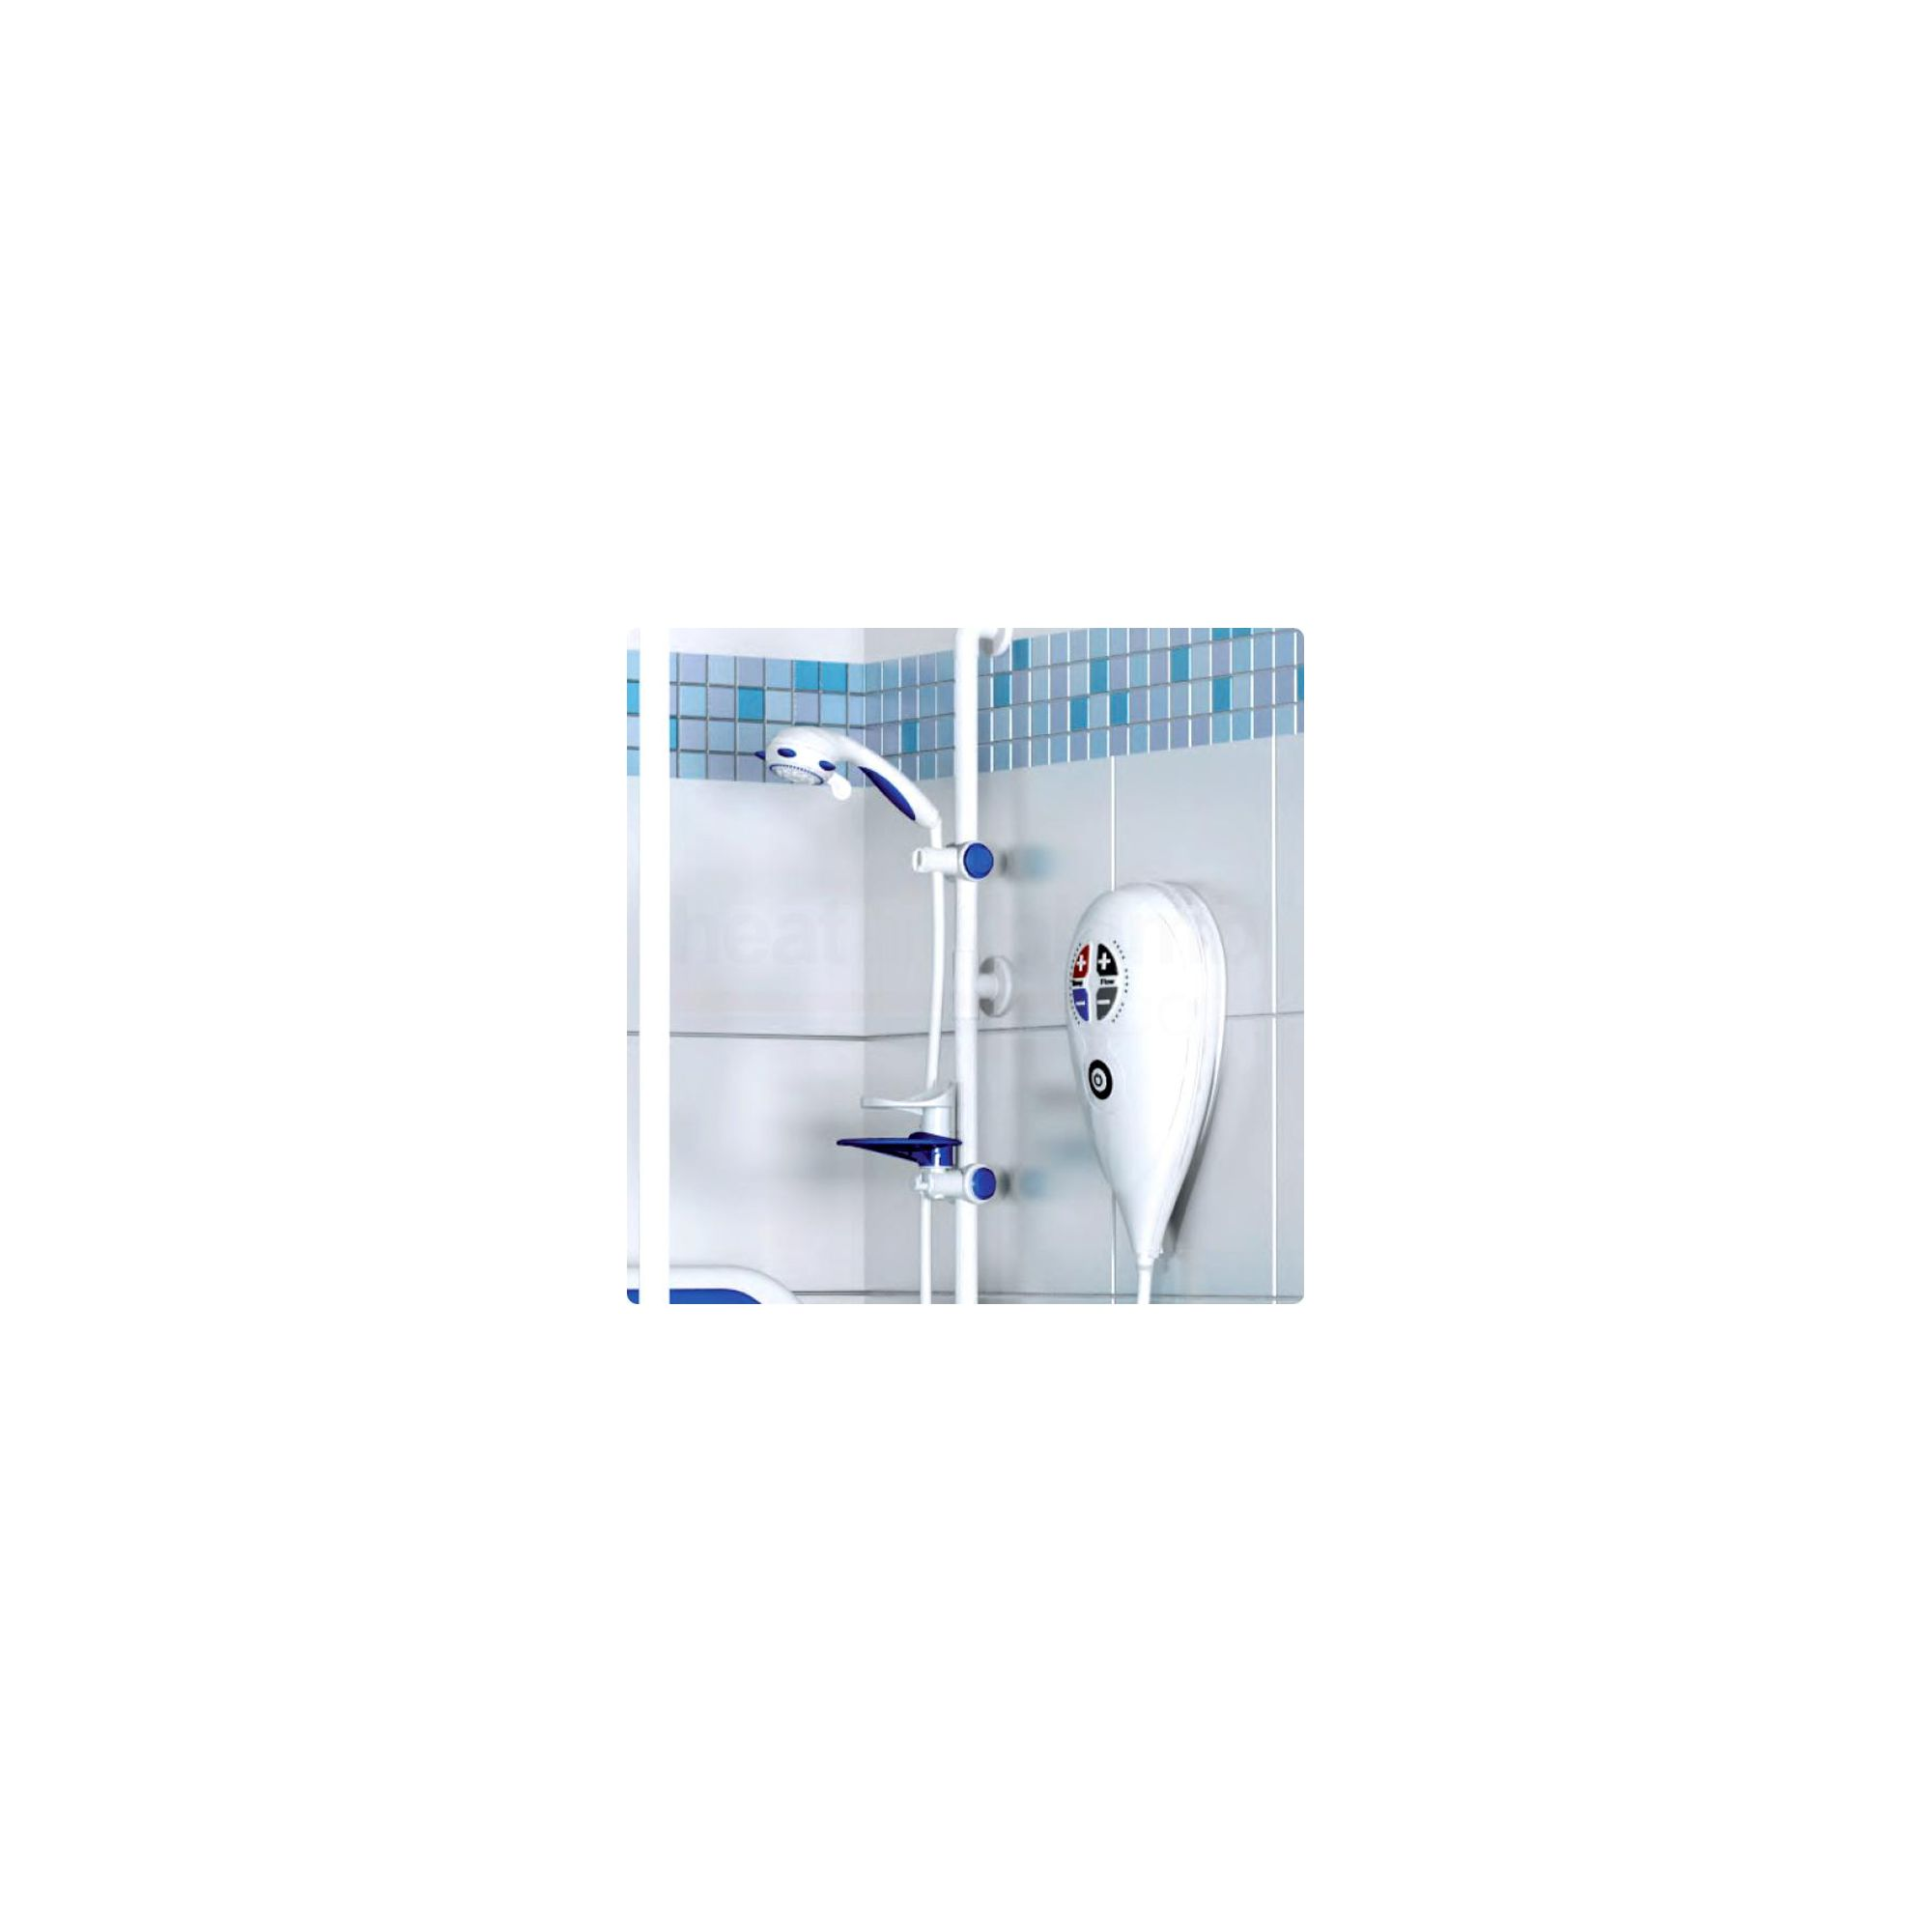 AKW Luda Care Electric Shower 10kW with White Riser Rail at Tesco Direct